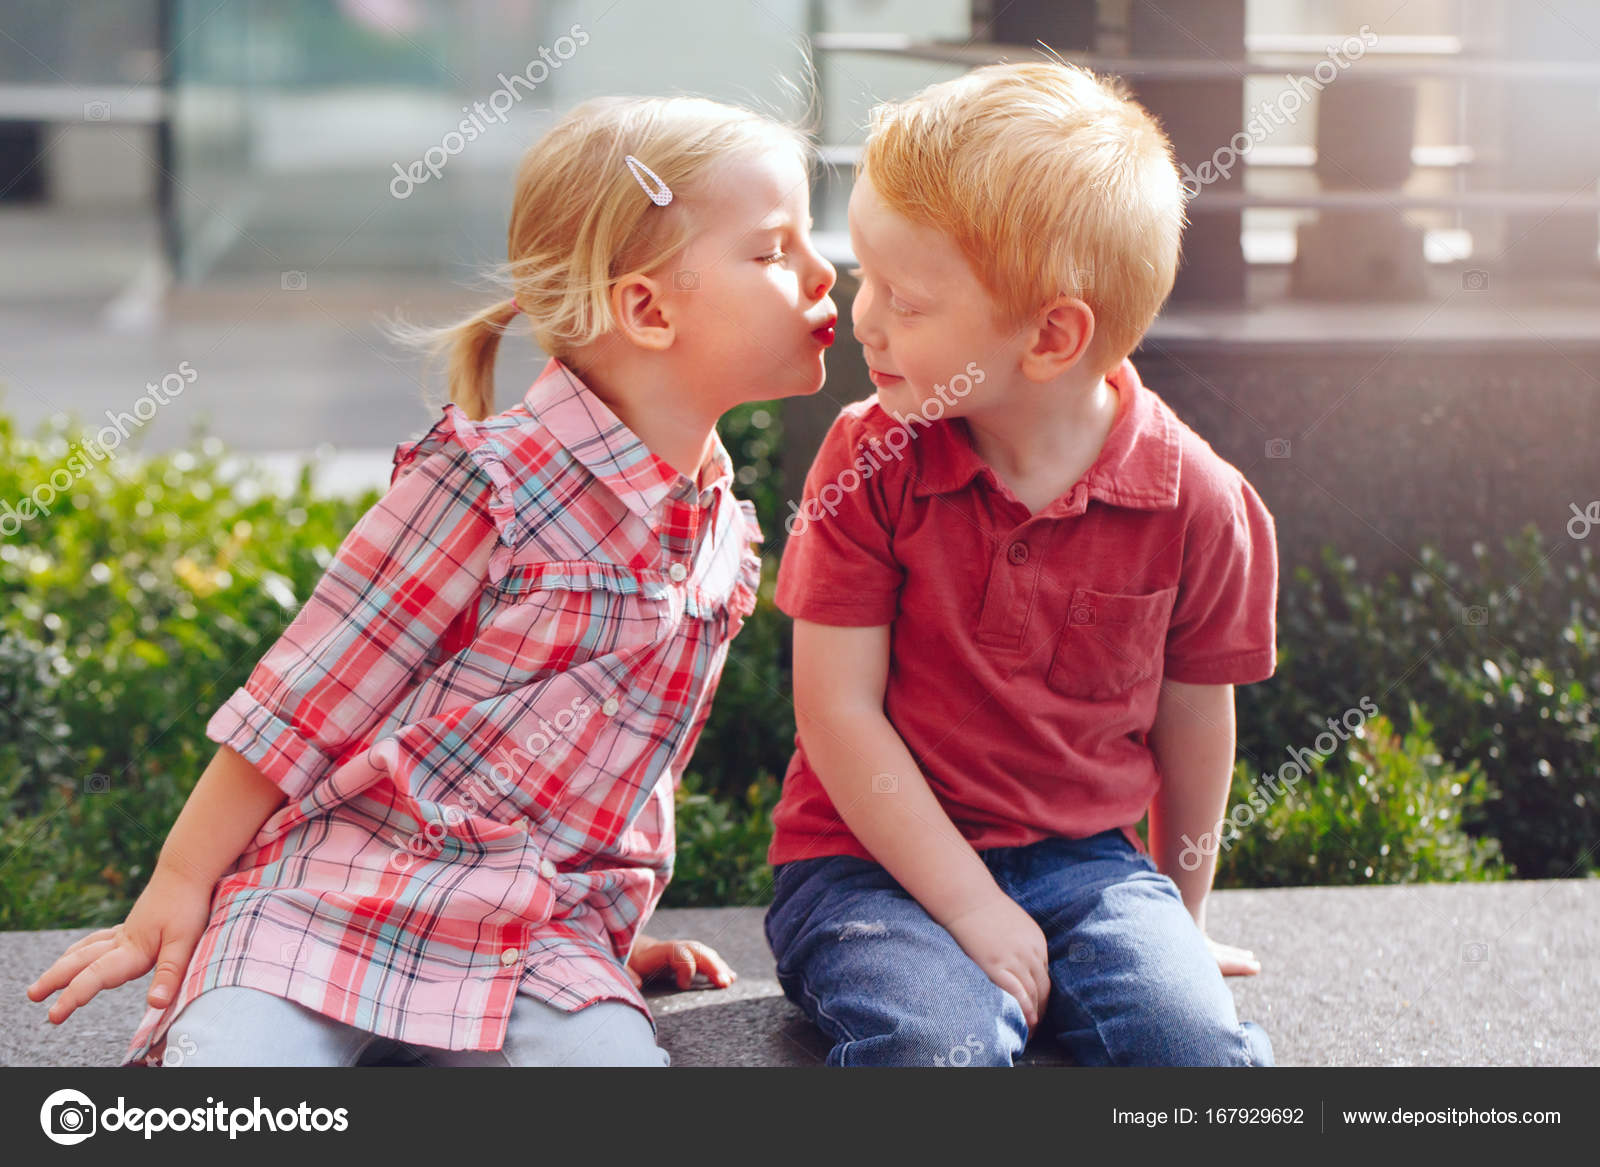 Little Boy And Girl Kissing Each Other  Stock Photo -8700